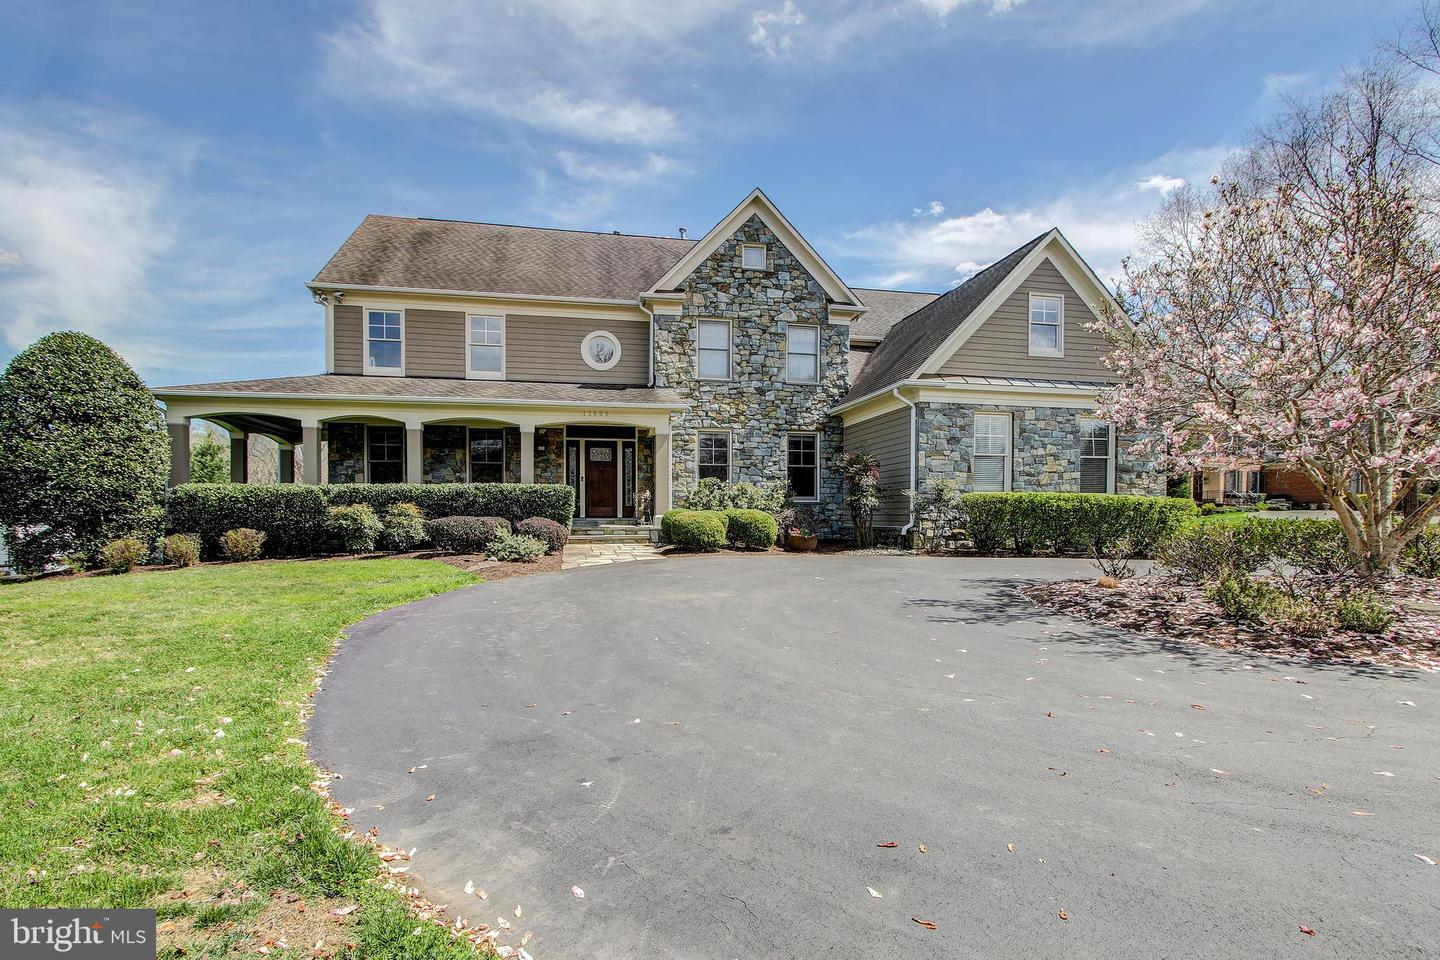 11505 FRONT FIELD LANE, POTOMAC, Maryland